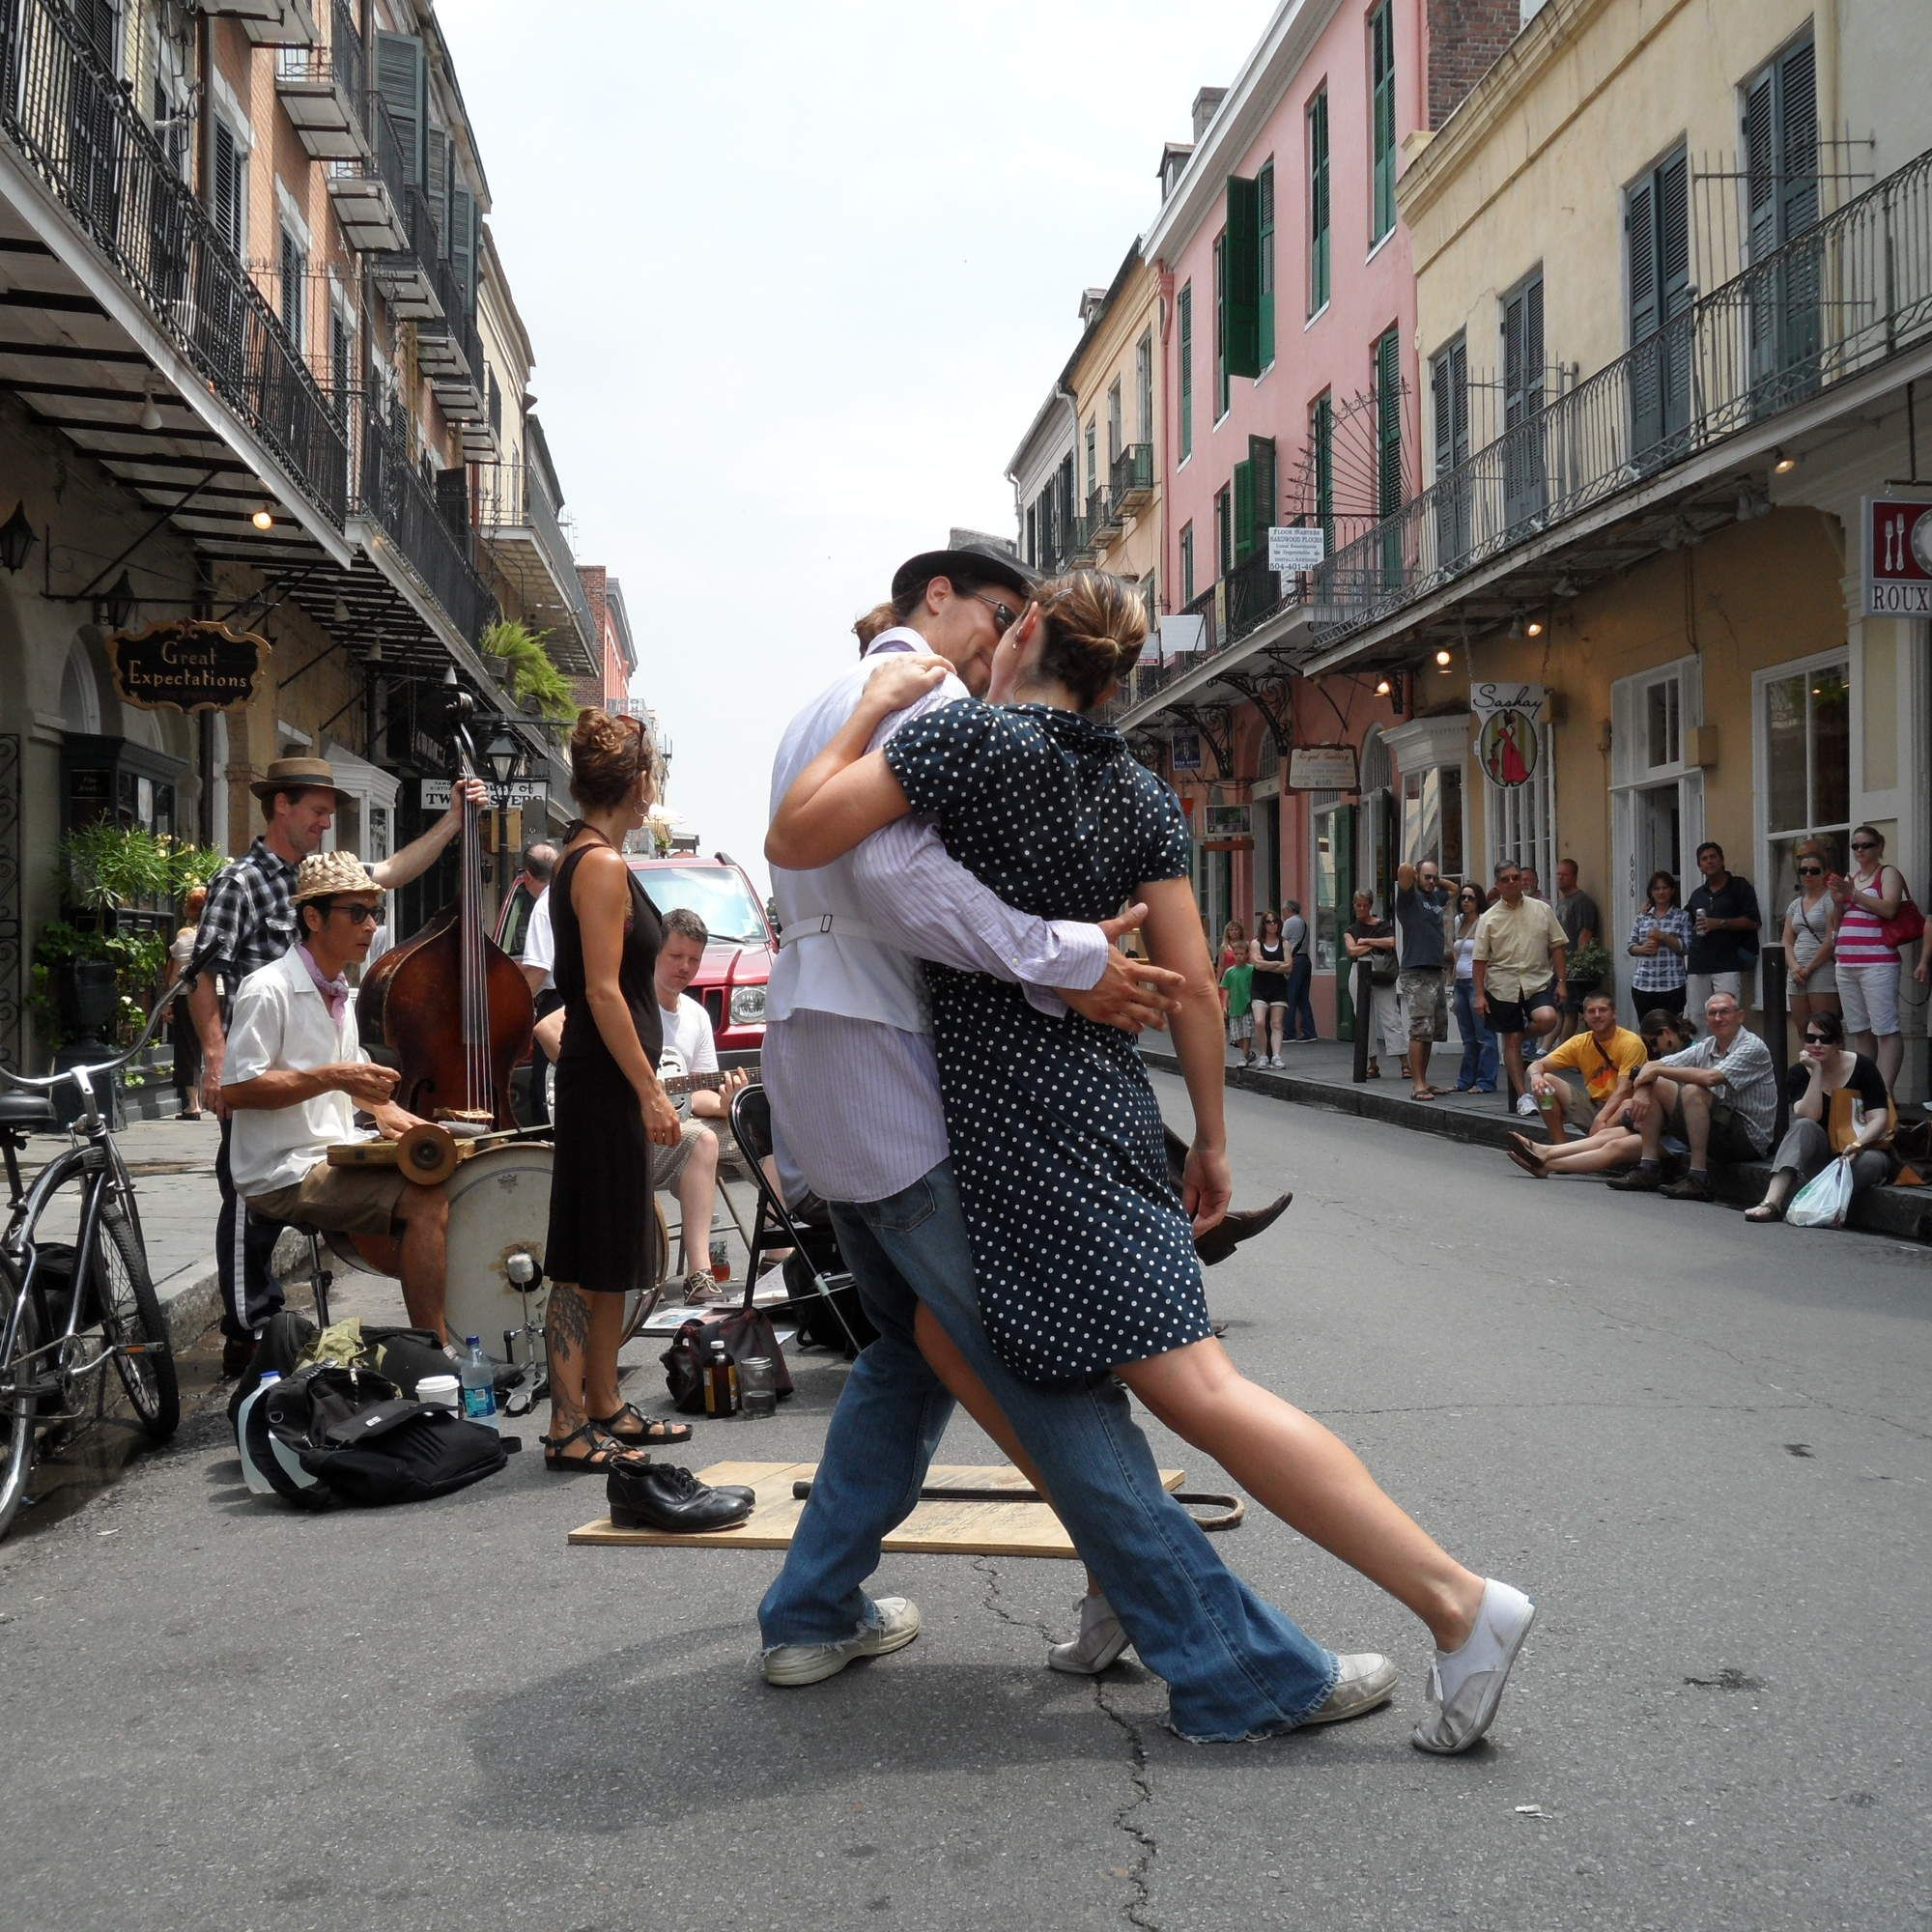 Top wedding venues in new orleans, louisiana